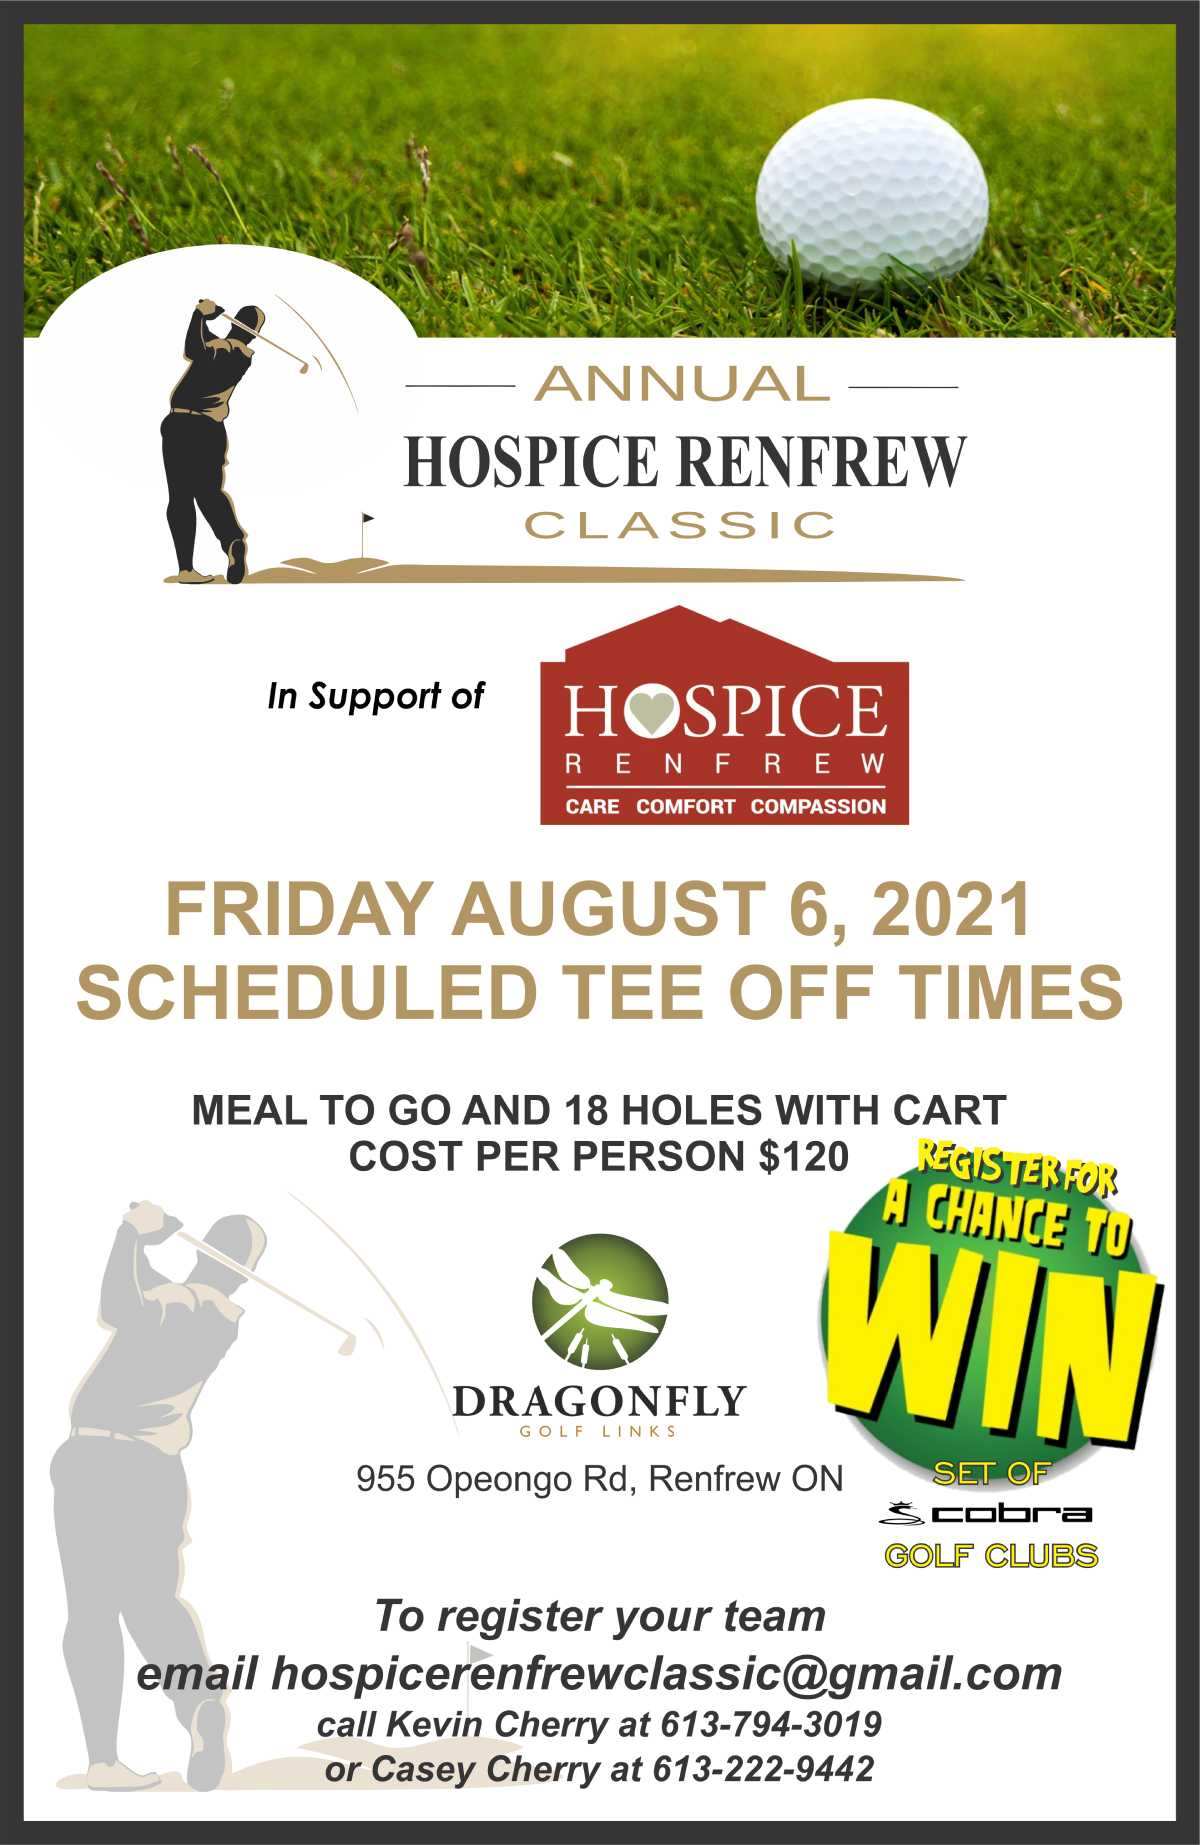 Annual Hospice Renfrew Classic - Click to view